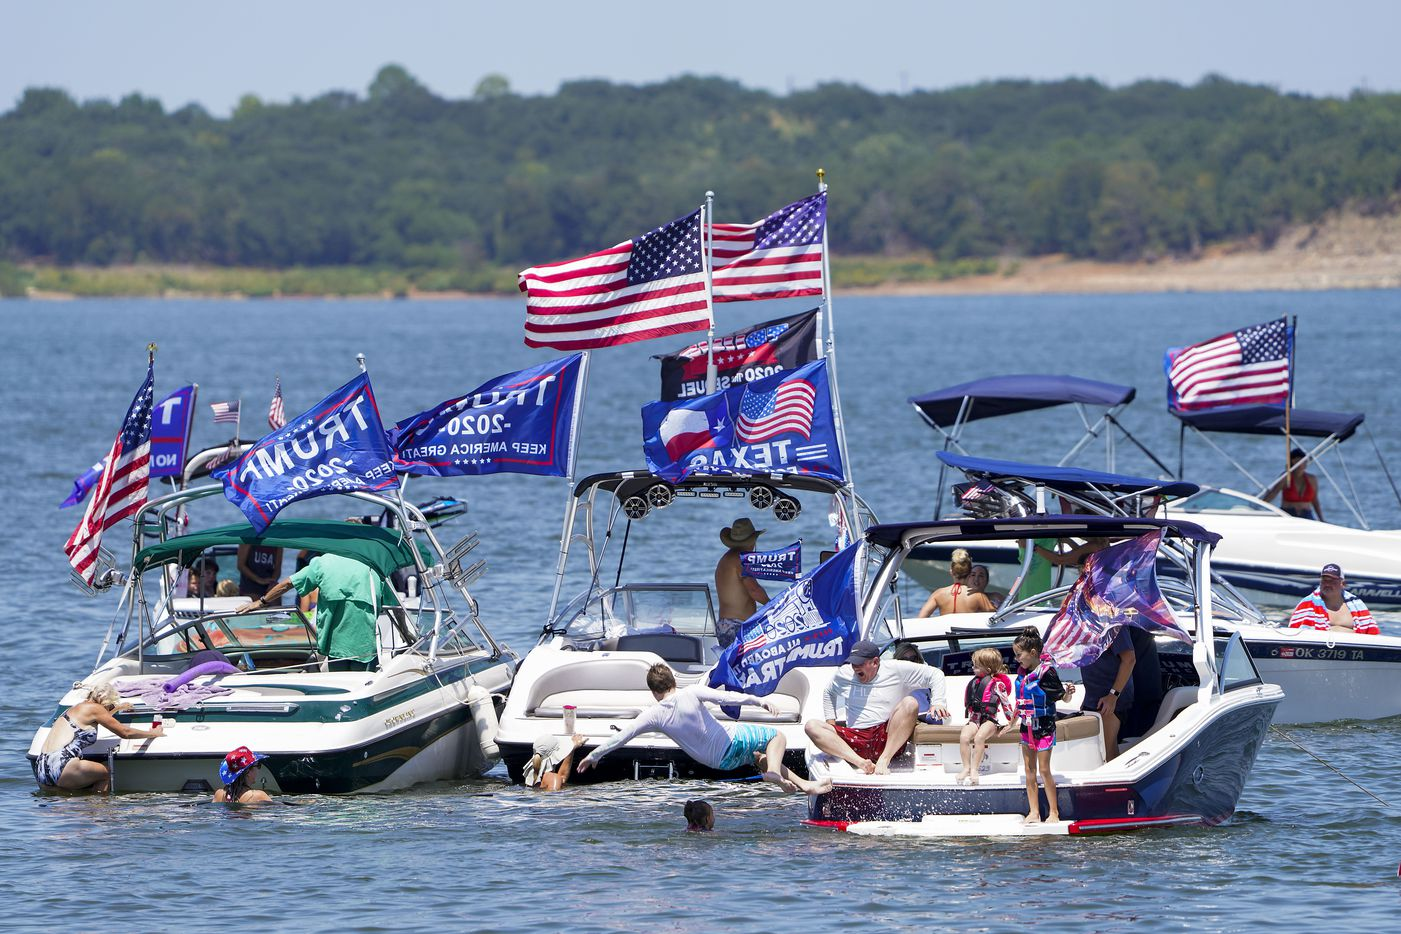 Boaters gather in support of President Donald Trump for a rally and boat parade at Oak Grove Park on Grapevine Lake on Saturday, Aug. 15, 2020.